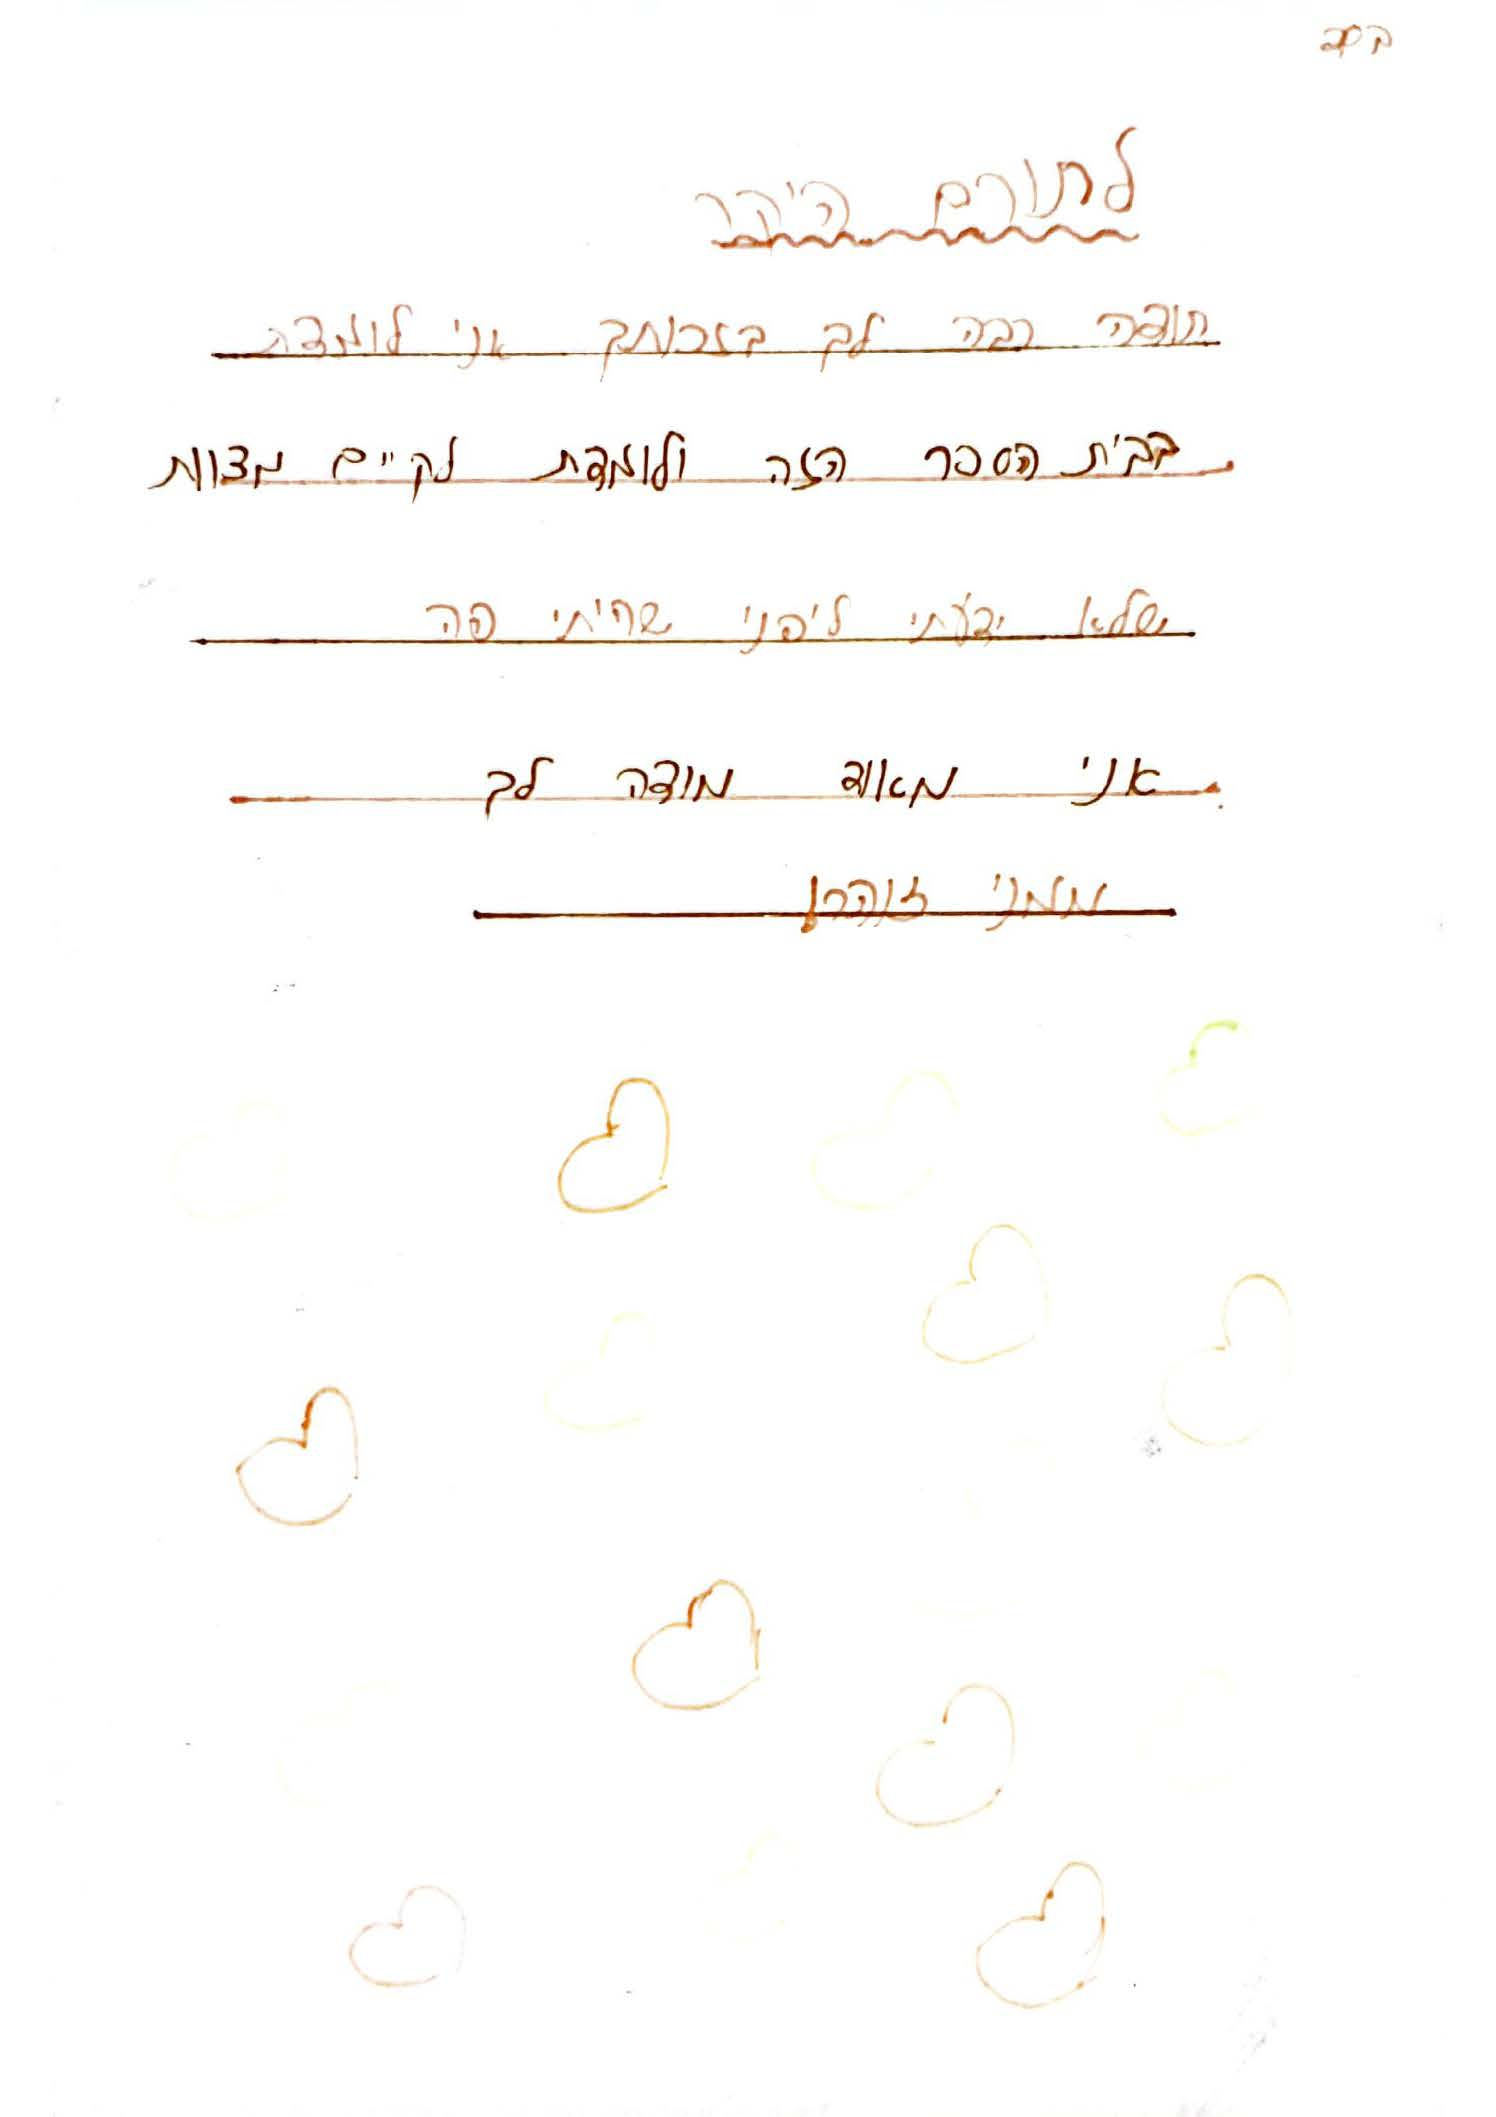 CamScanner 07-28-2021 09.08_Page_07